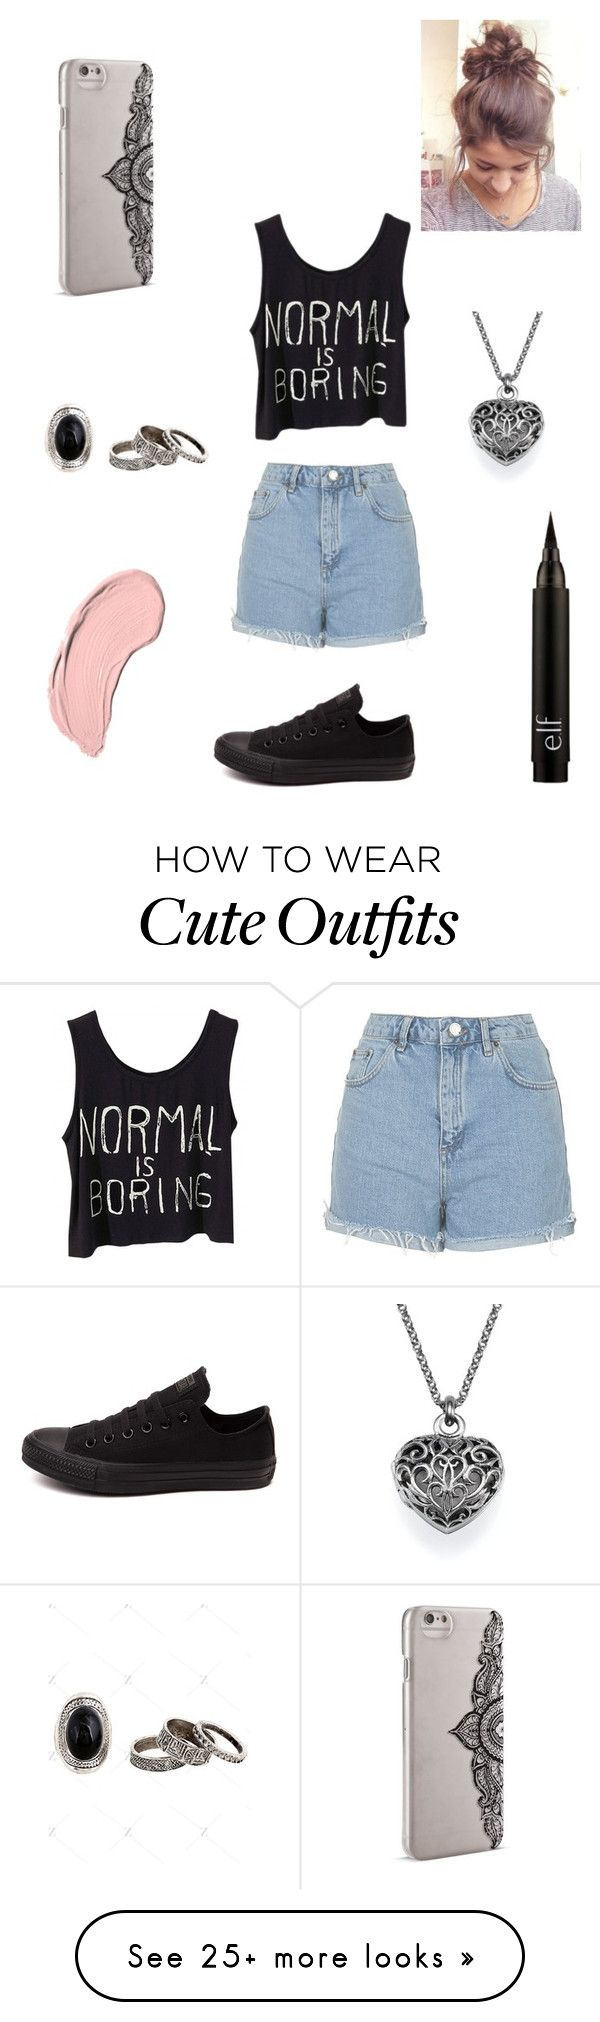 """""""Casual outfit"""" by nicolettelessa on Polyvore featuring NYX, Topshop, Converse and Nanette Lepore"""